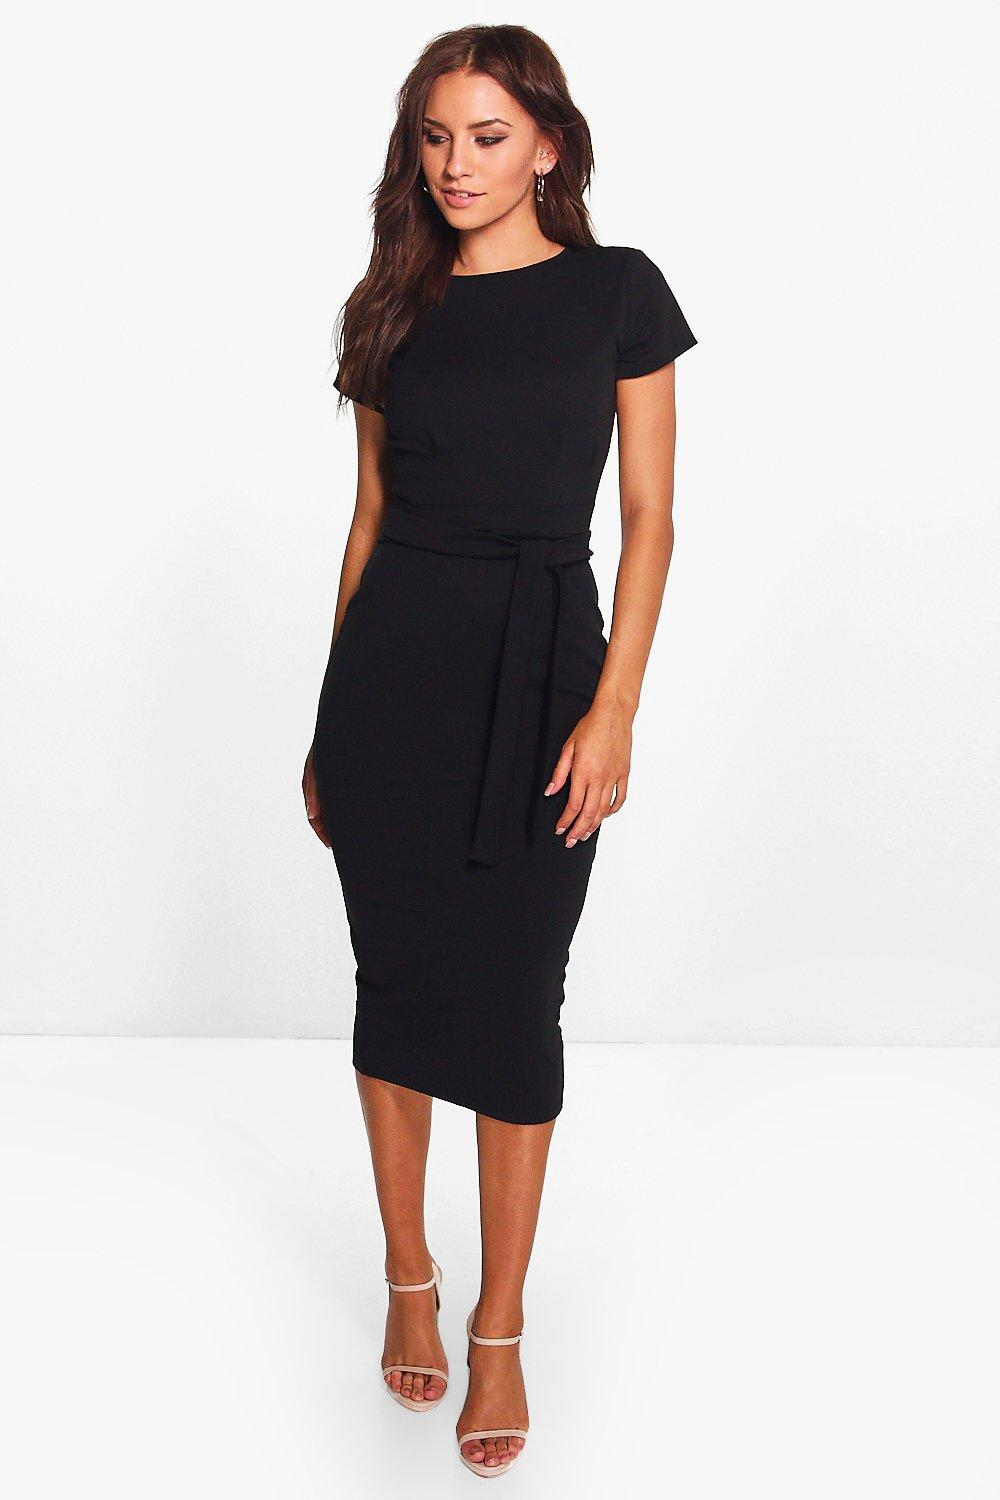 Pleat Front Belted Tailored Midi Dress Boohoo In 2021 Midi Dress With Sleeves Clothes Bodycon Fashion [ 1500 x 1000 Pixel ]